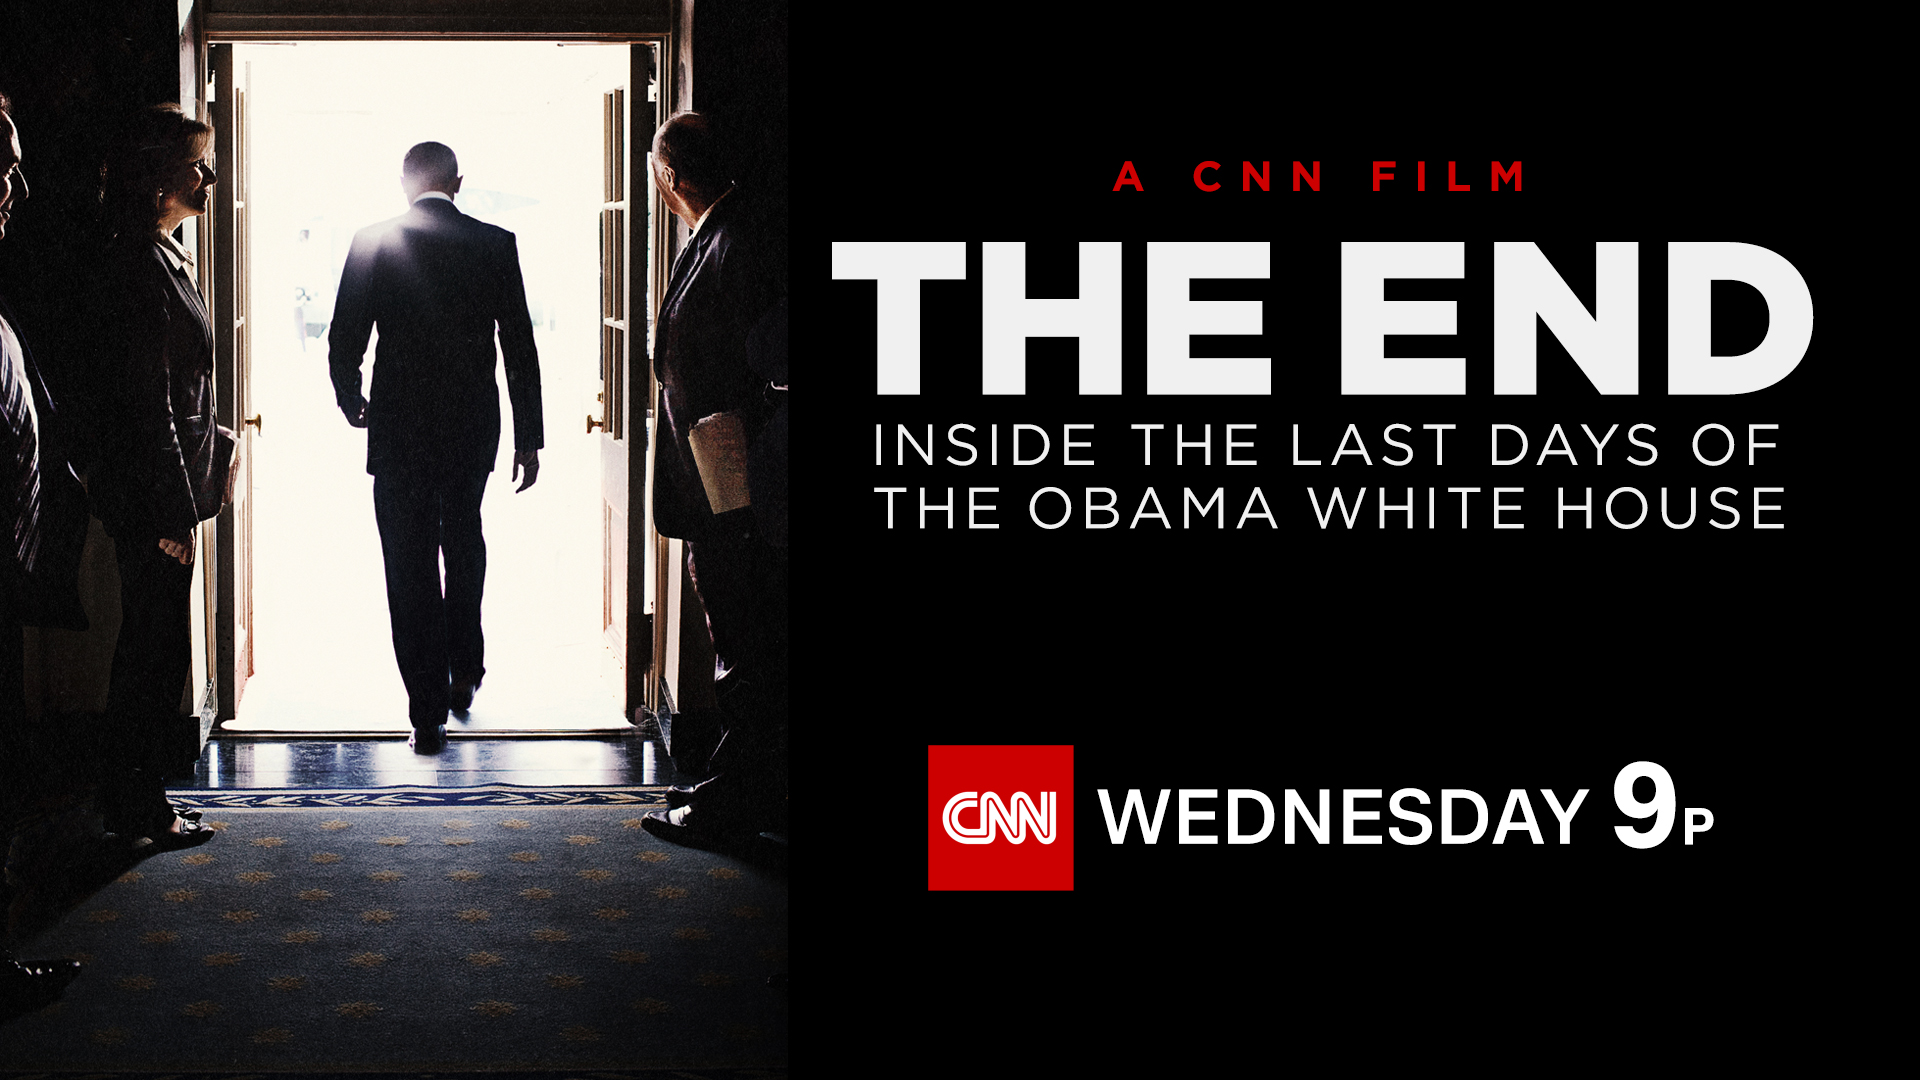 The End: Inside The Last Days of the Obama White House Premieres Jan. 18 on CNN/U.S. and CNN International